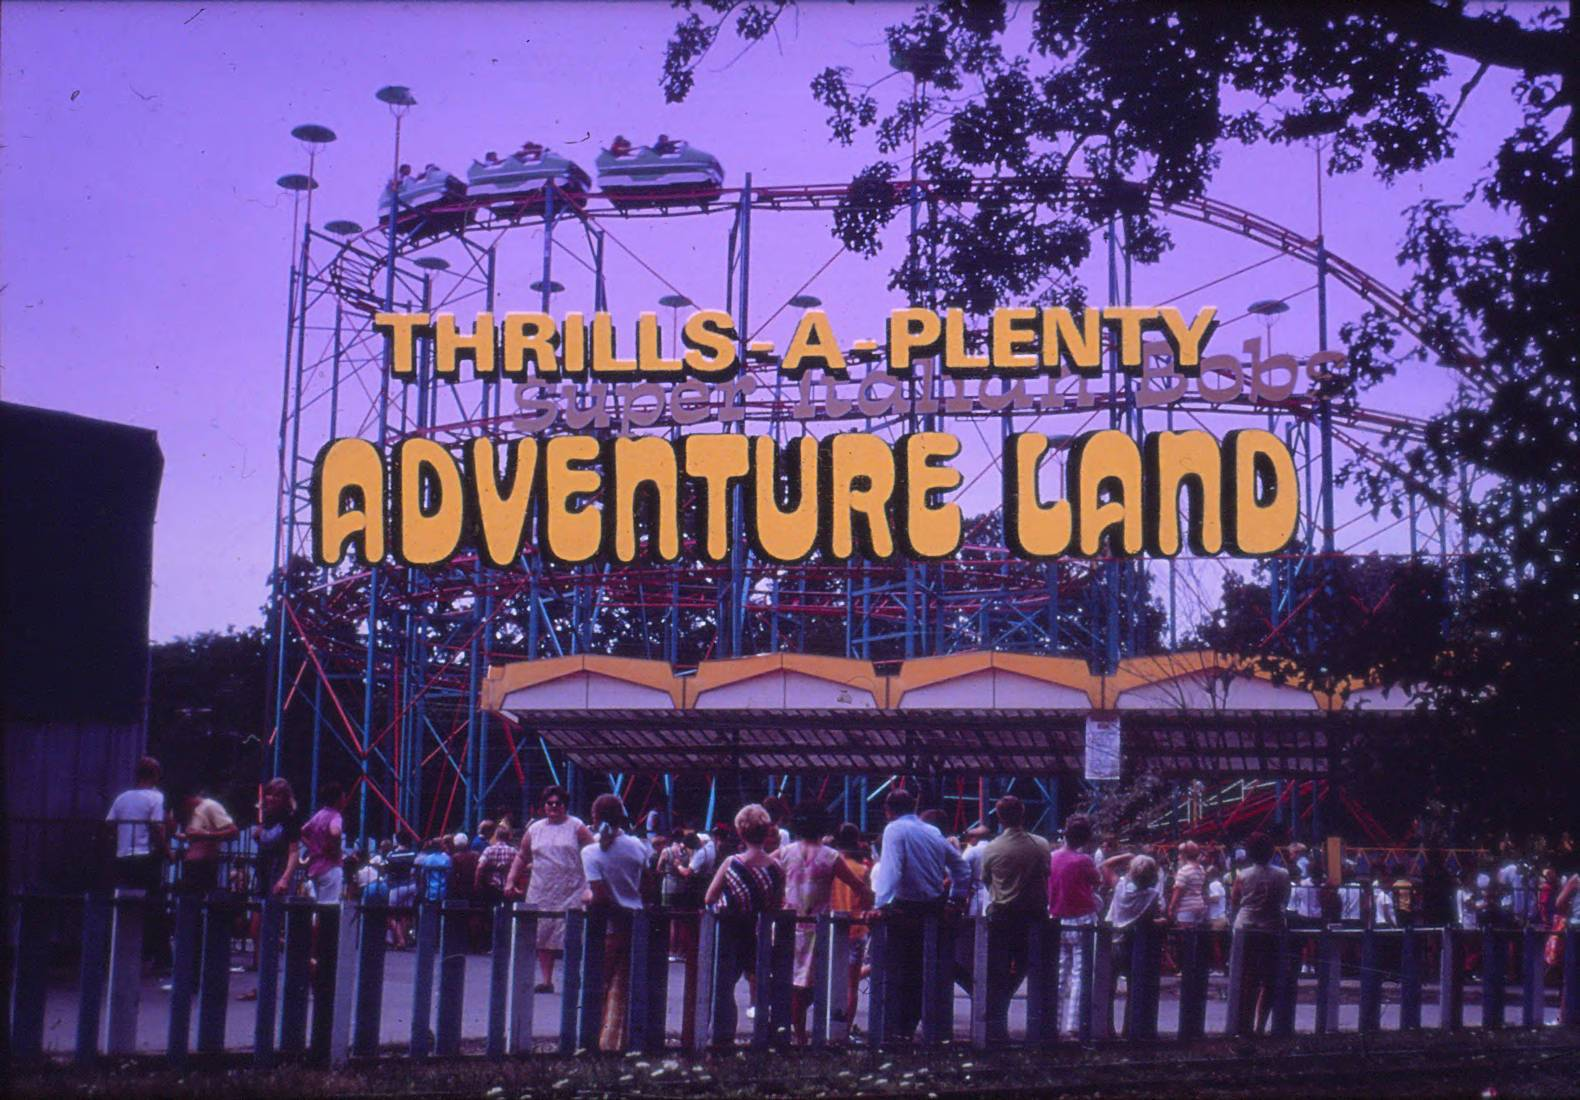 Super Italian Bobs roller coaster featured on an ad for Adventure Land in Addison.